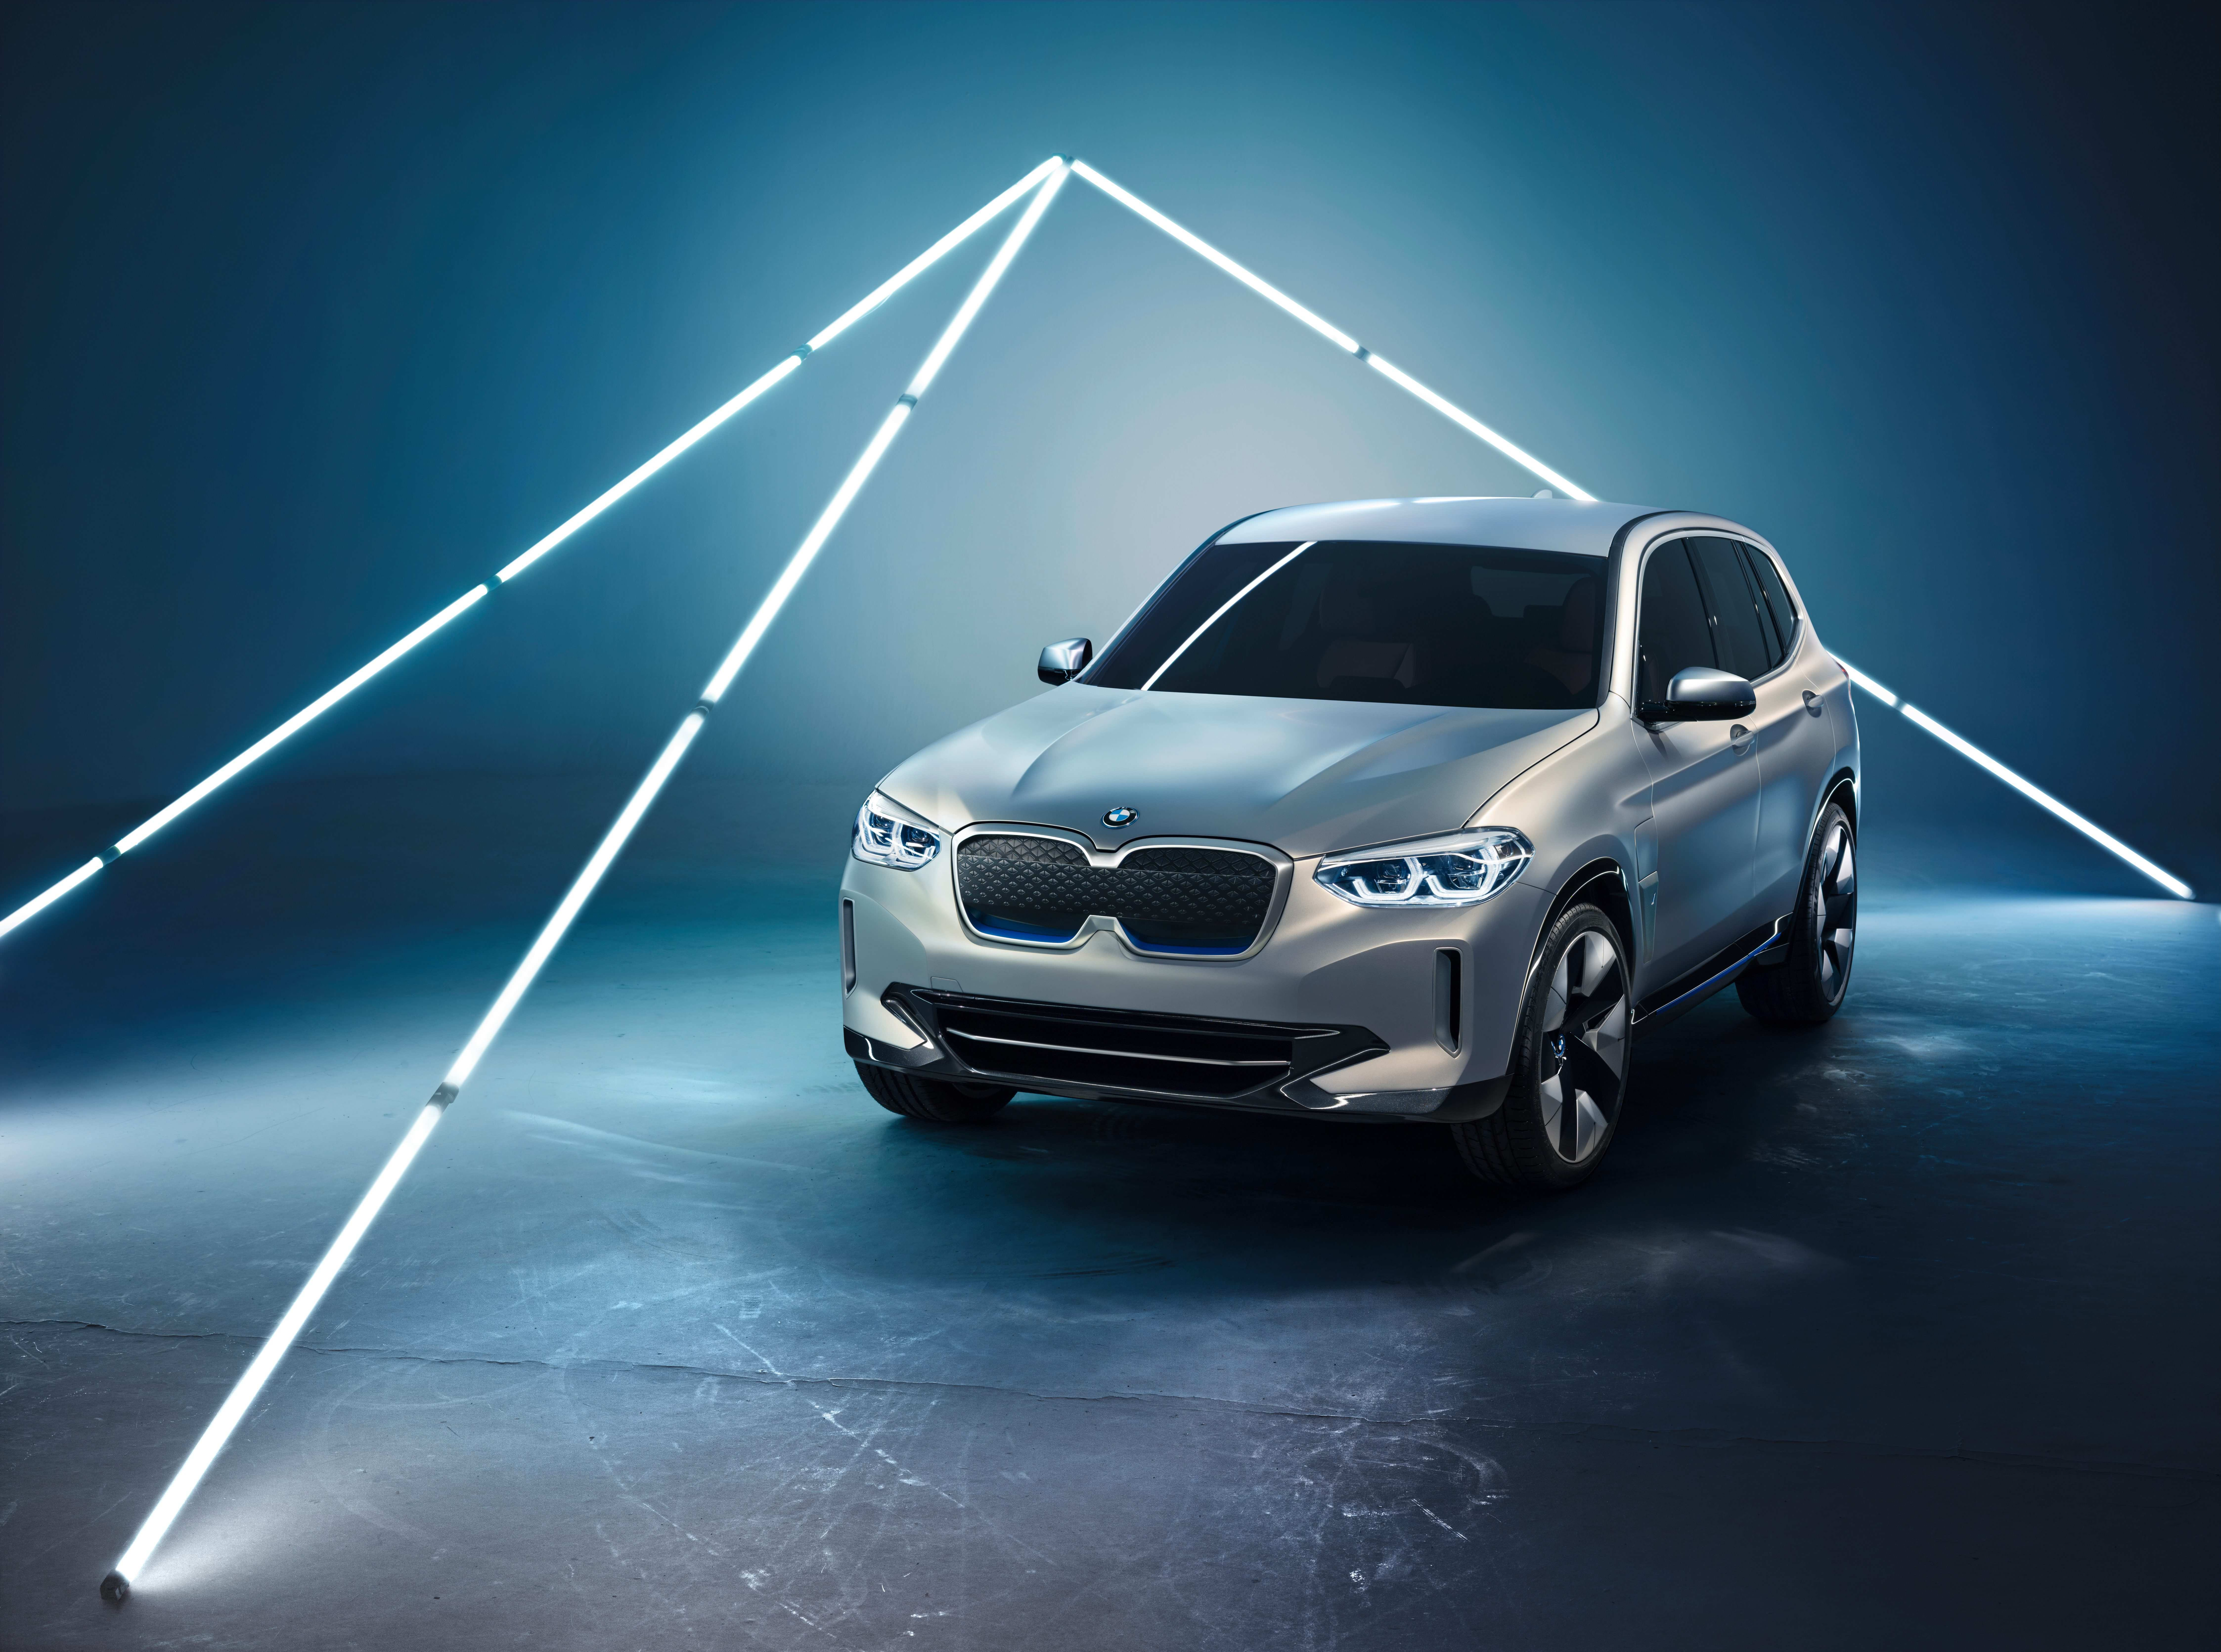 79 Great 2020 Bmw X3 Electric Prices by 2020 Bmw X3 Electric